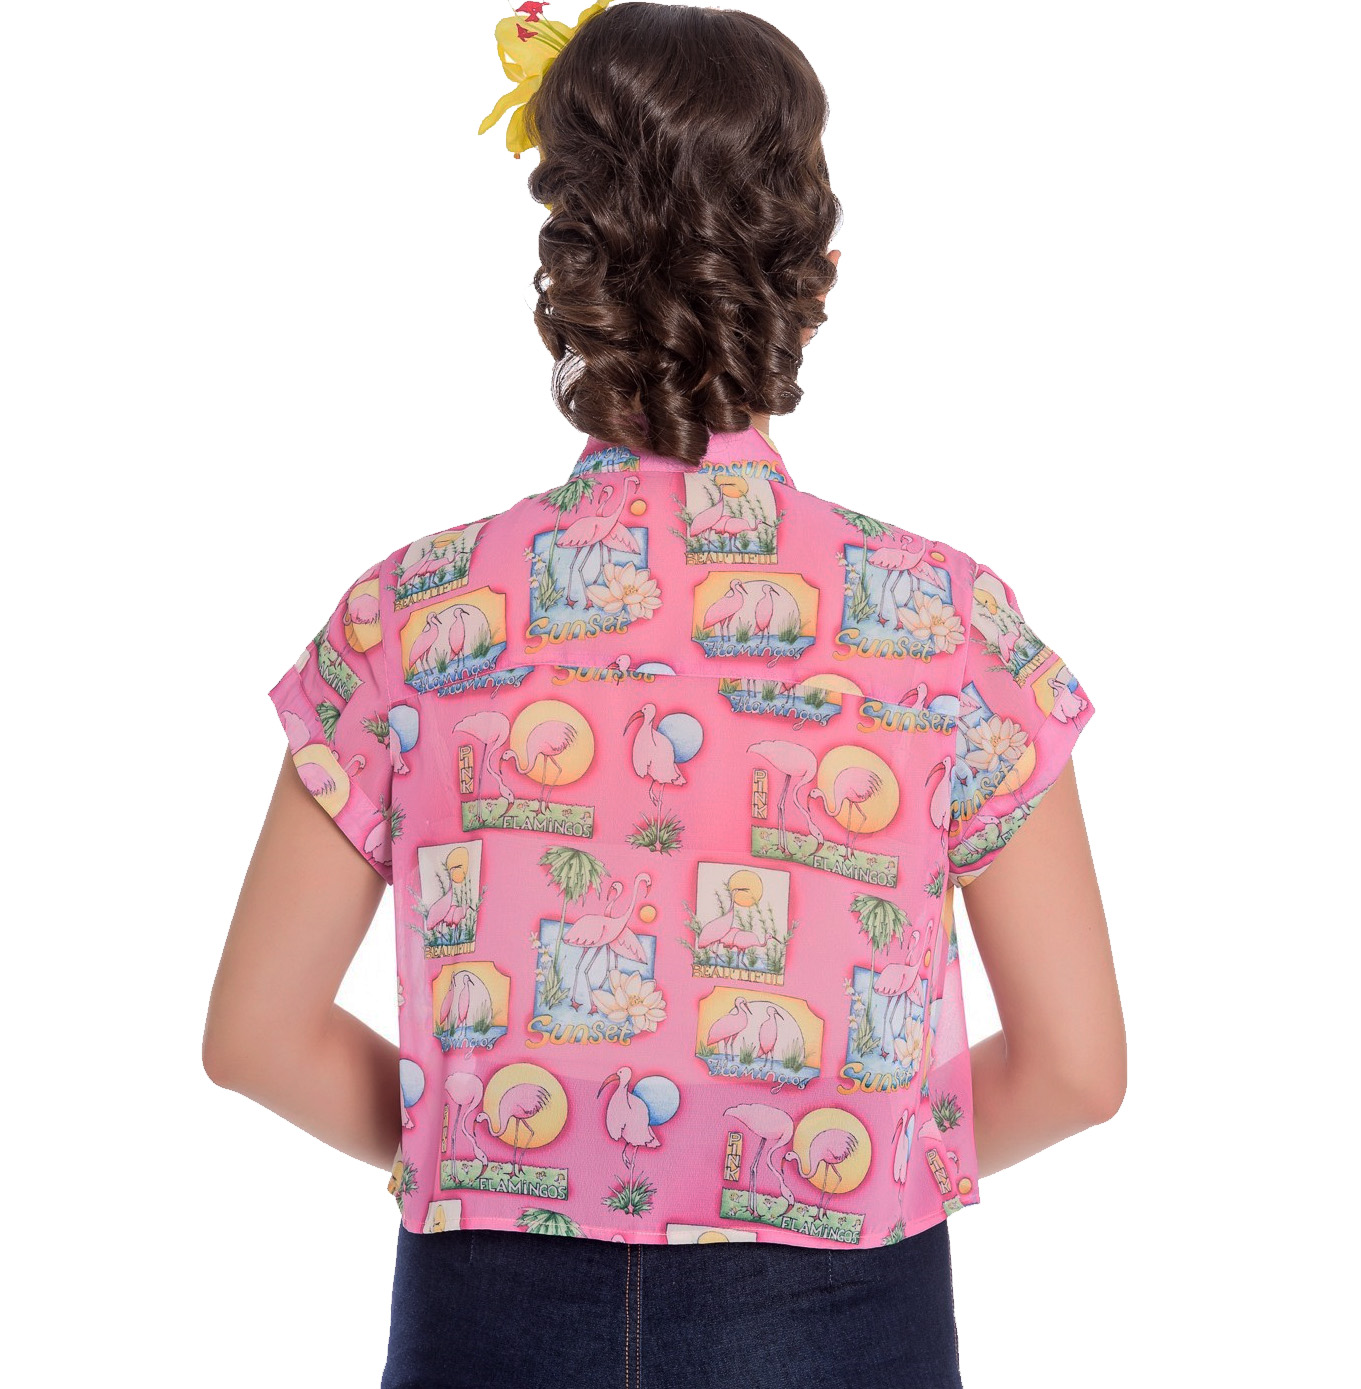 thumbnail 32 - Hell Bunny 50s Retro Top Pink Flamingo MAXINE Cropped Blouse Shirt All Sizes